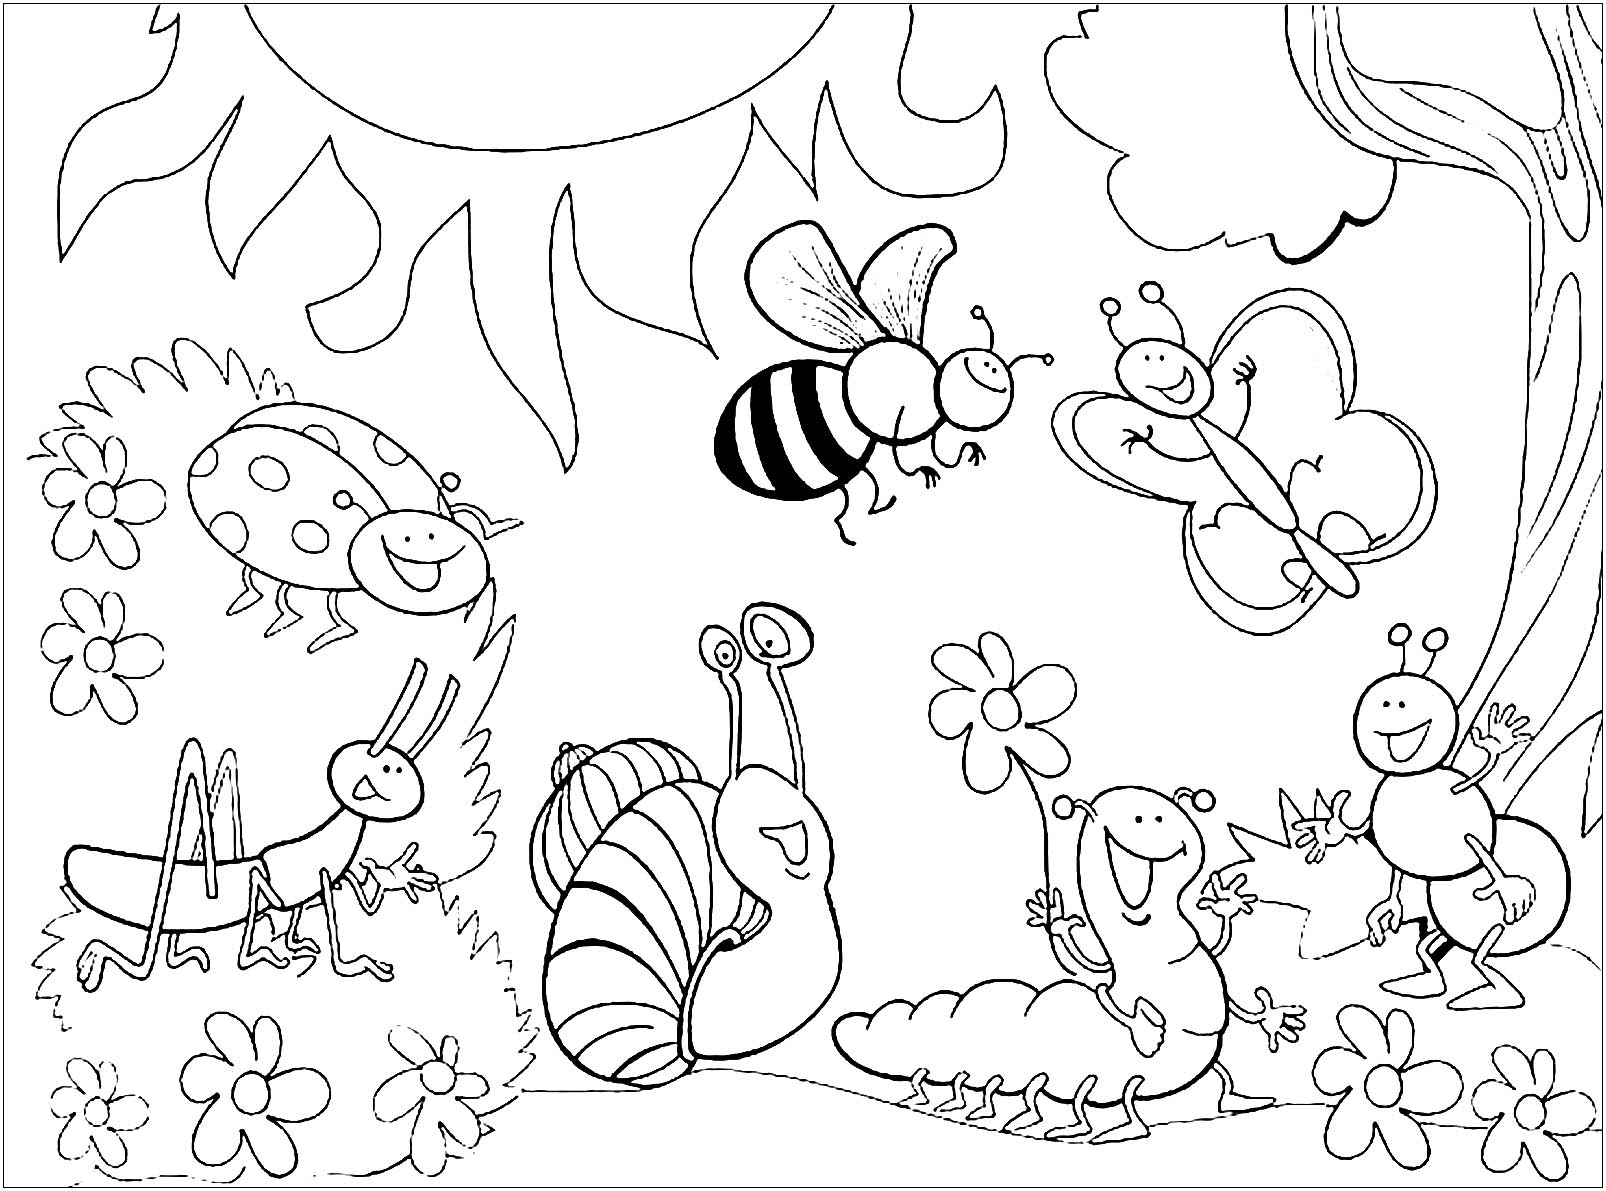 Insects for children - Insects Kids Coloring Pages